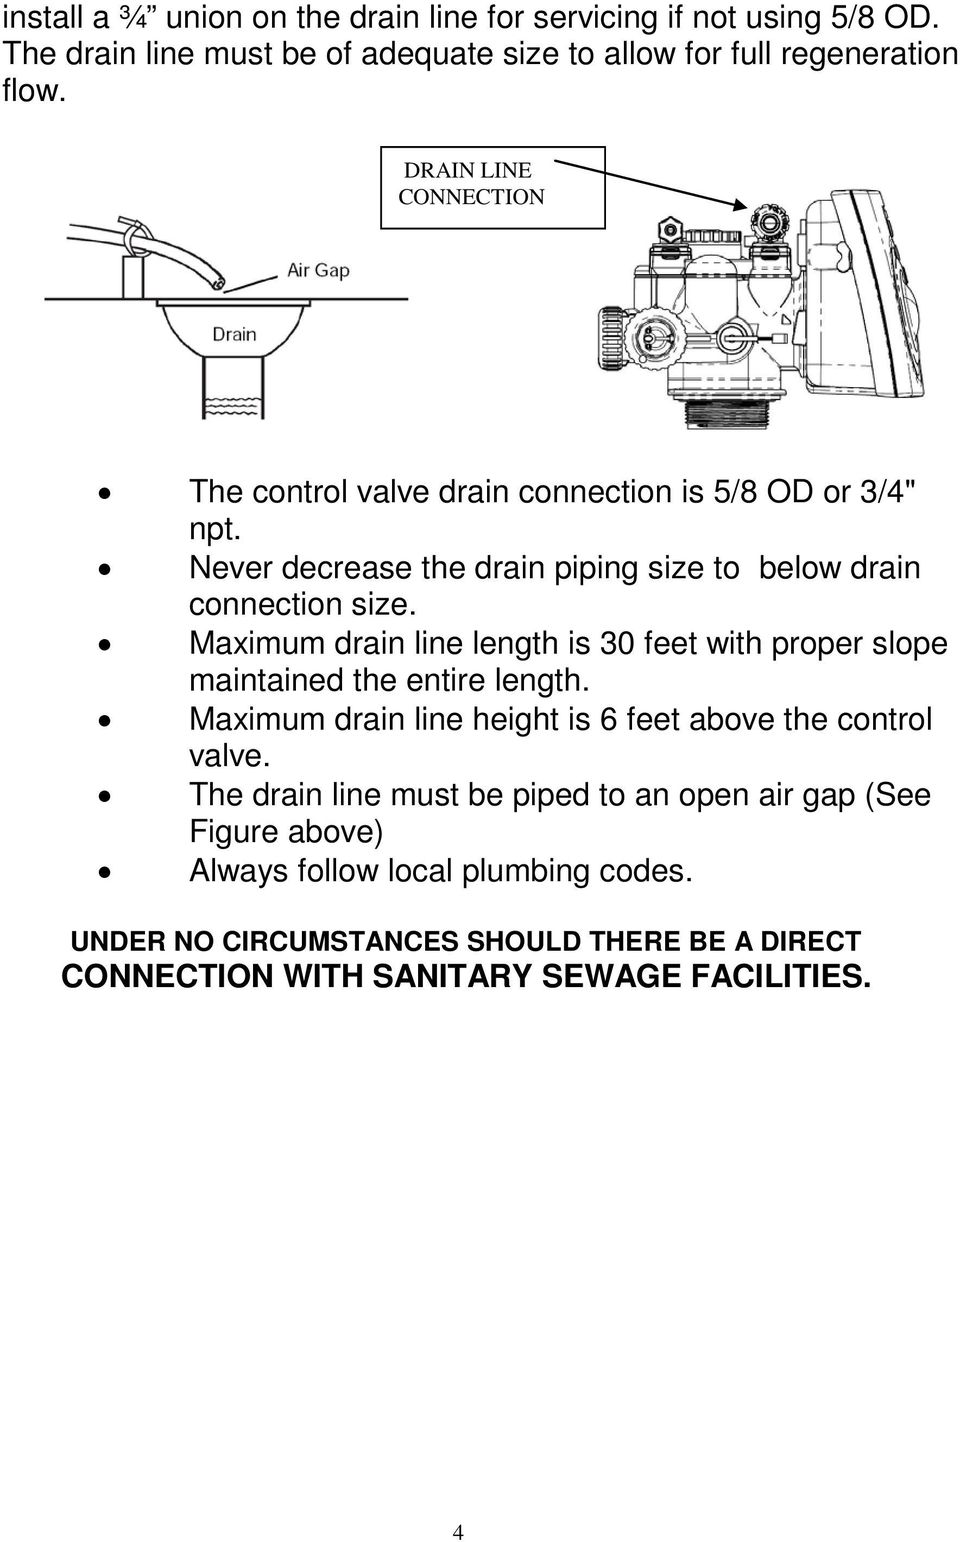 Maximum drain line length is 30 feet with proper slope maintained the entire length. Maximum drain line height is 6 feet above the control valve.